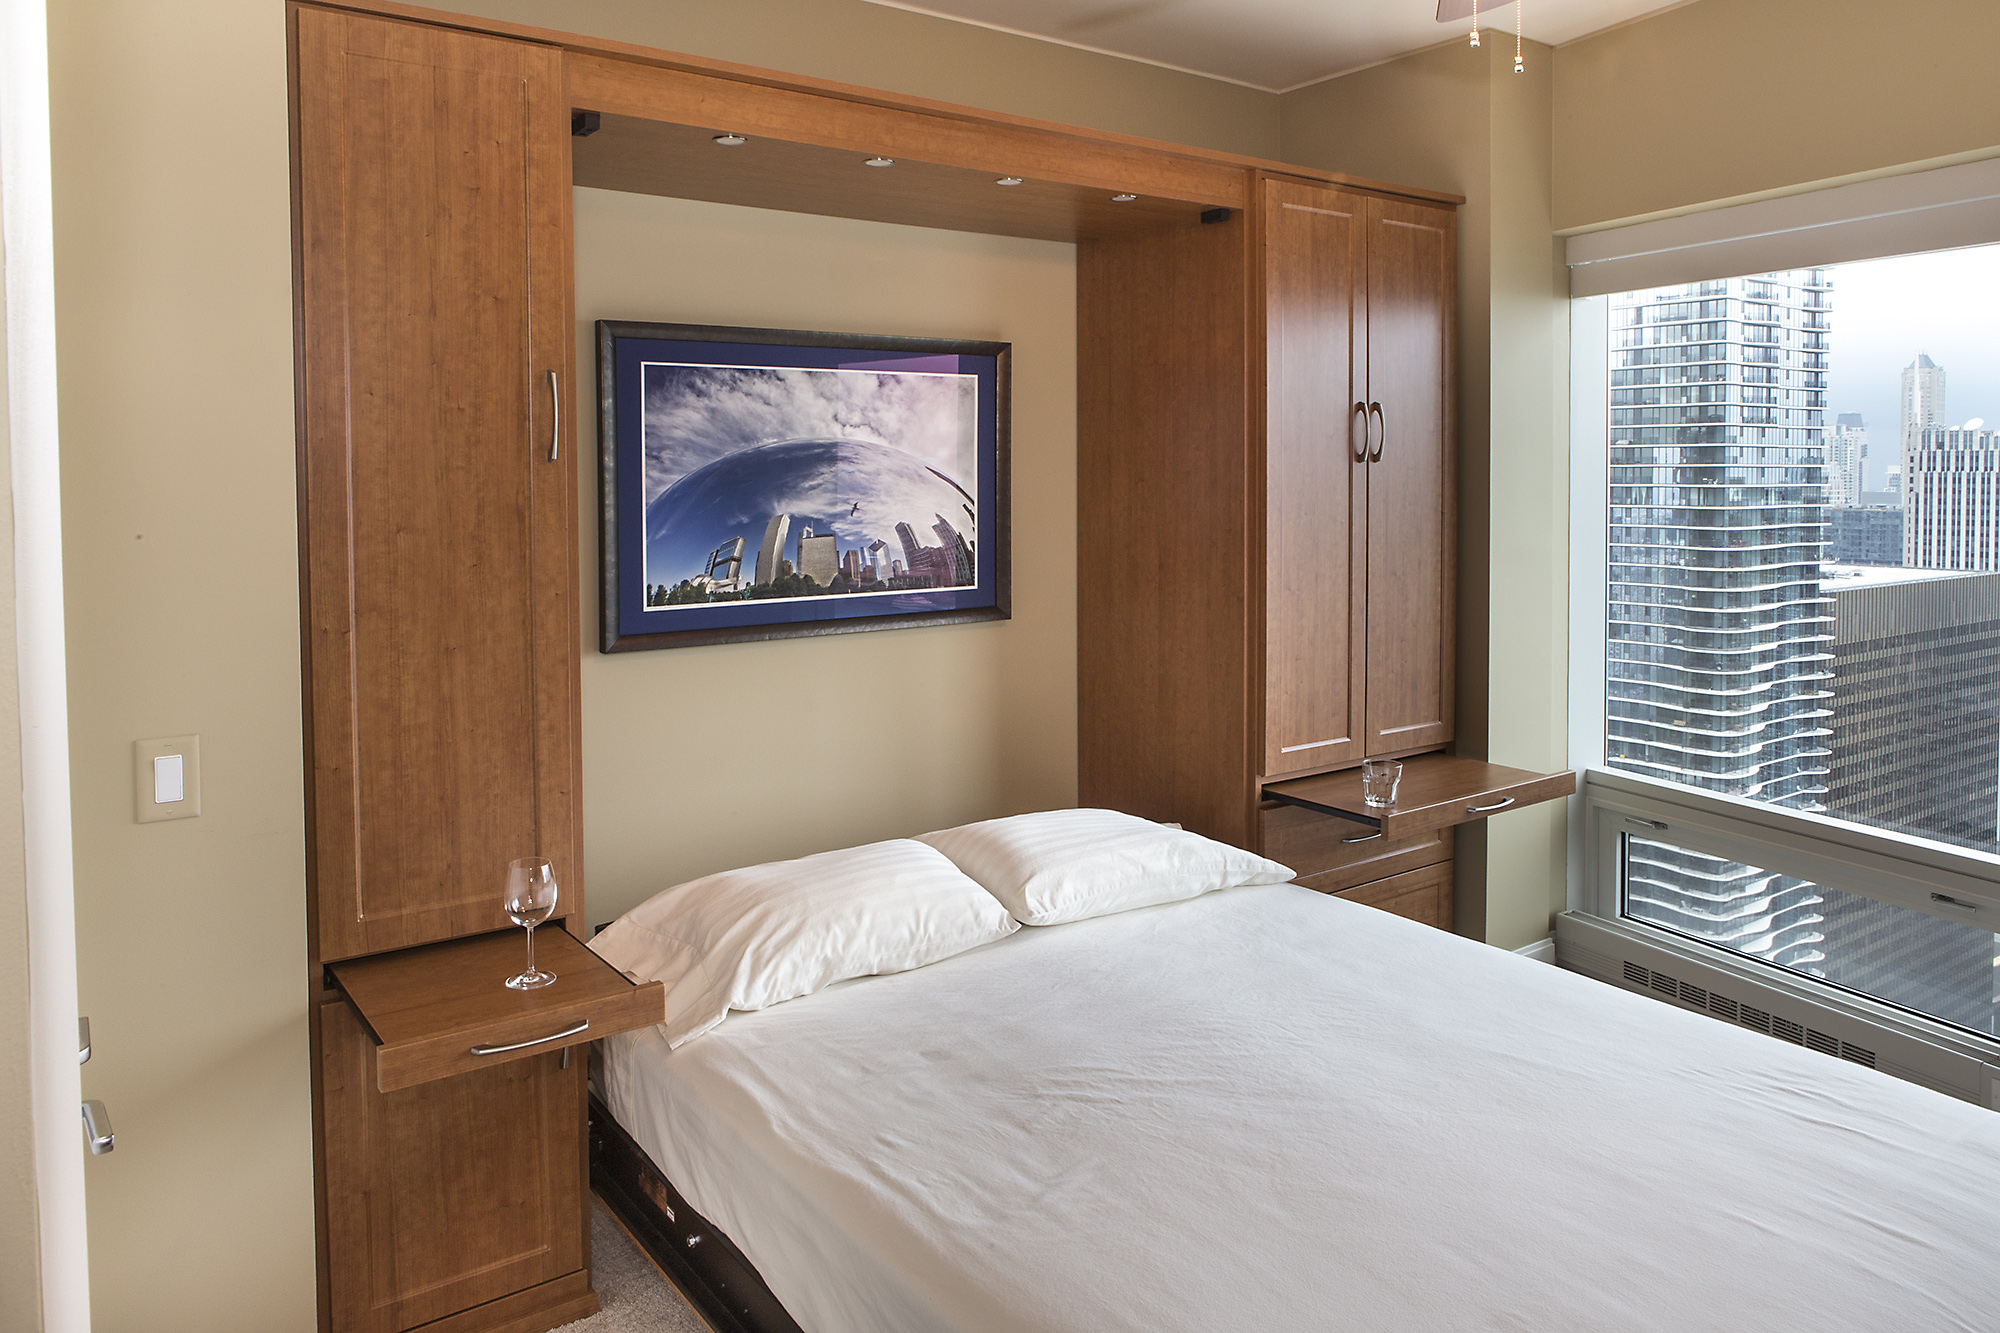 Murphy Bed Chicago 28 Images Have A Murphy Bed Chicago